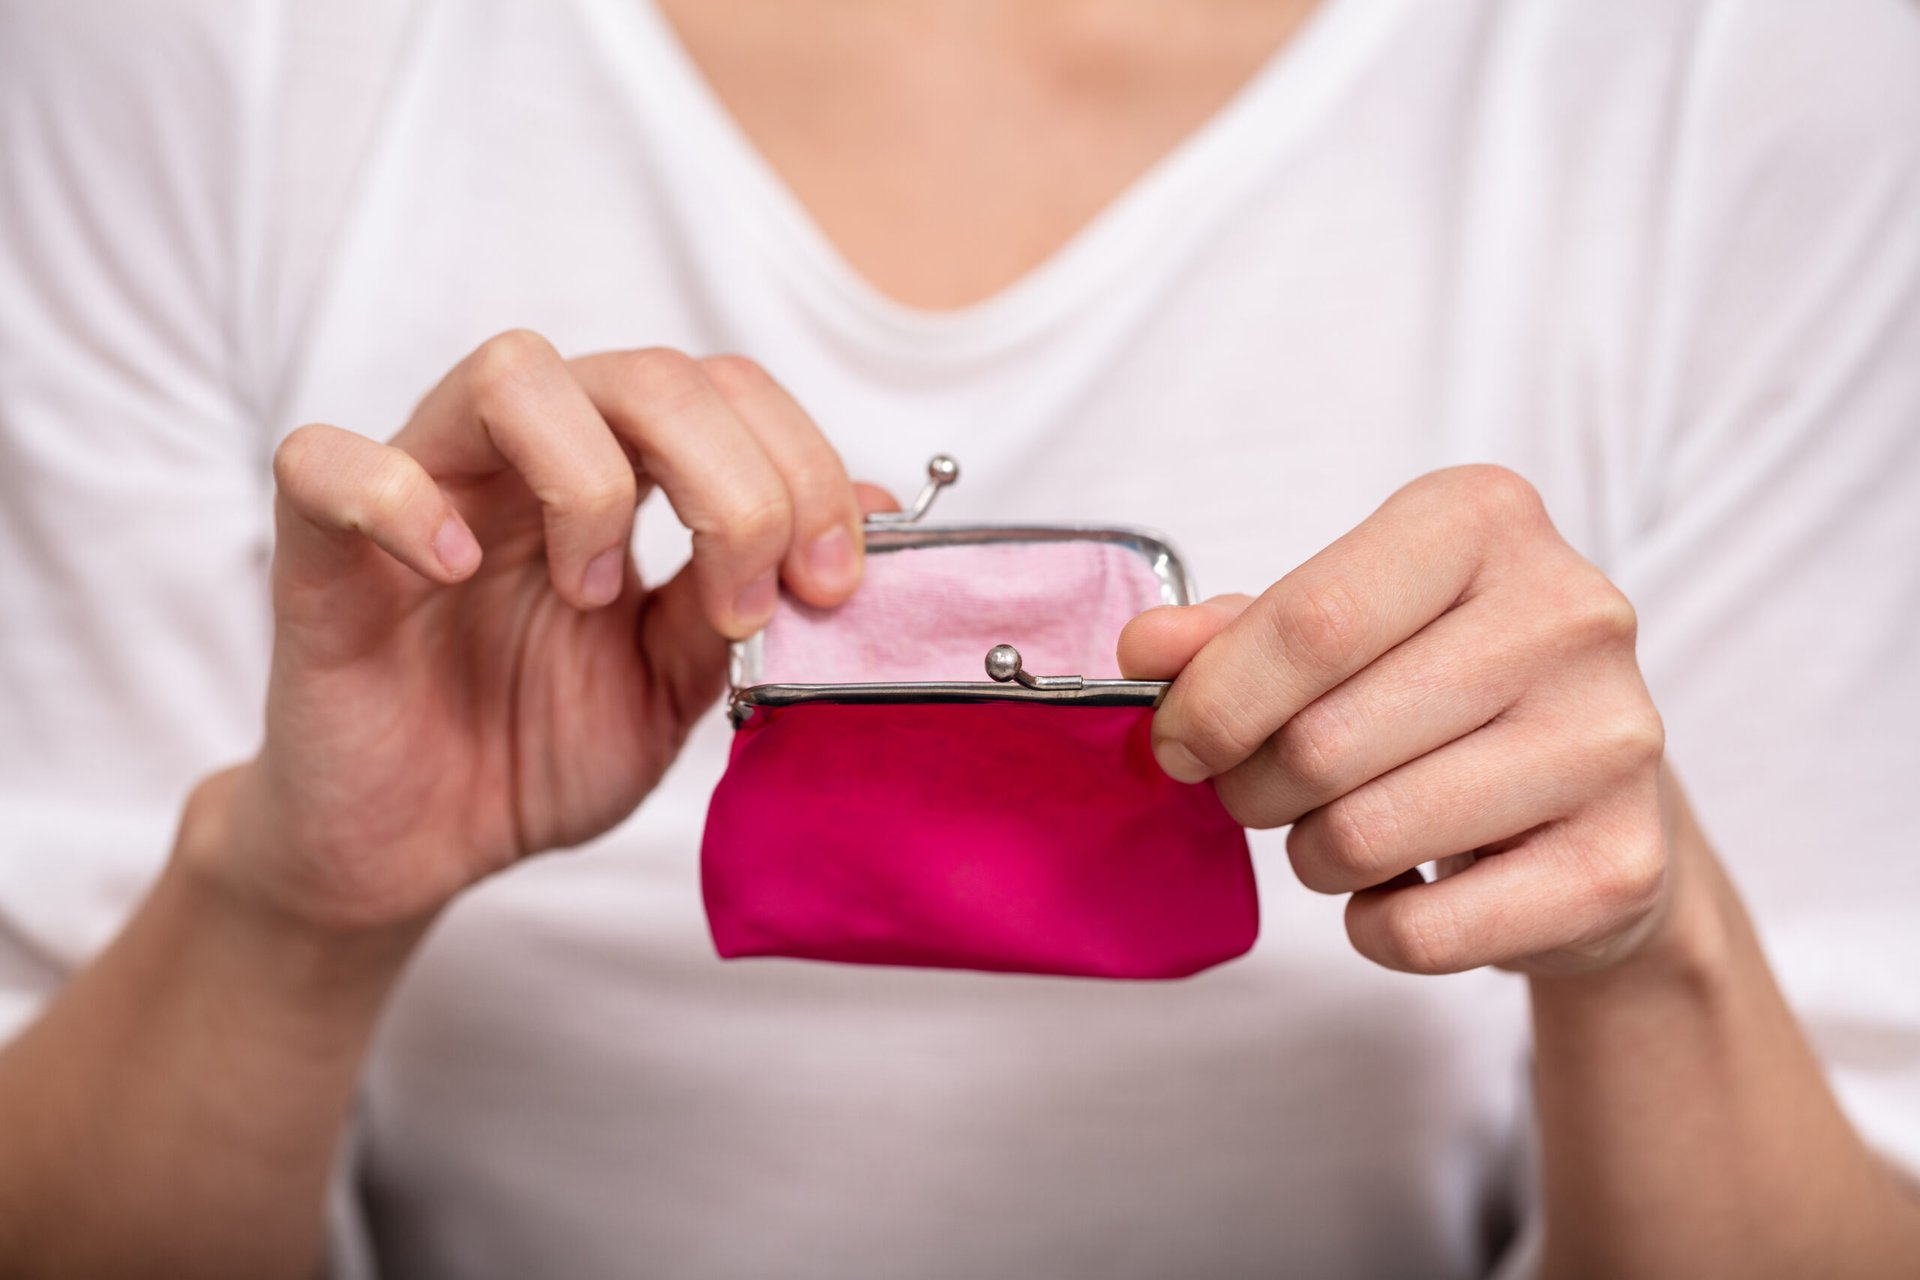 Woman opening a coin purse